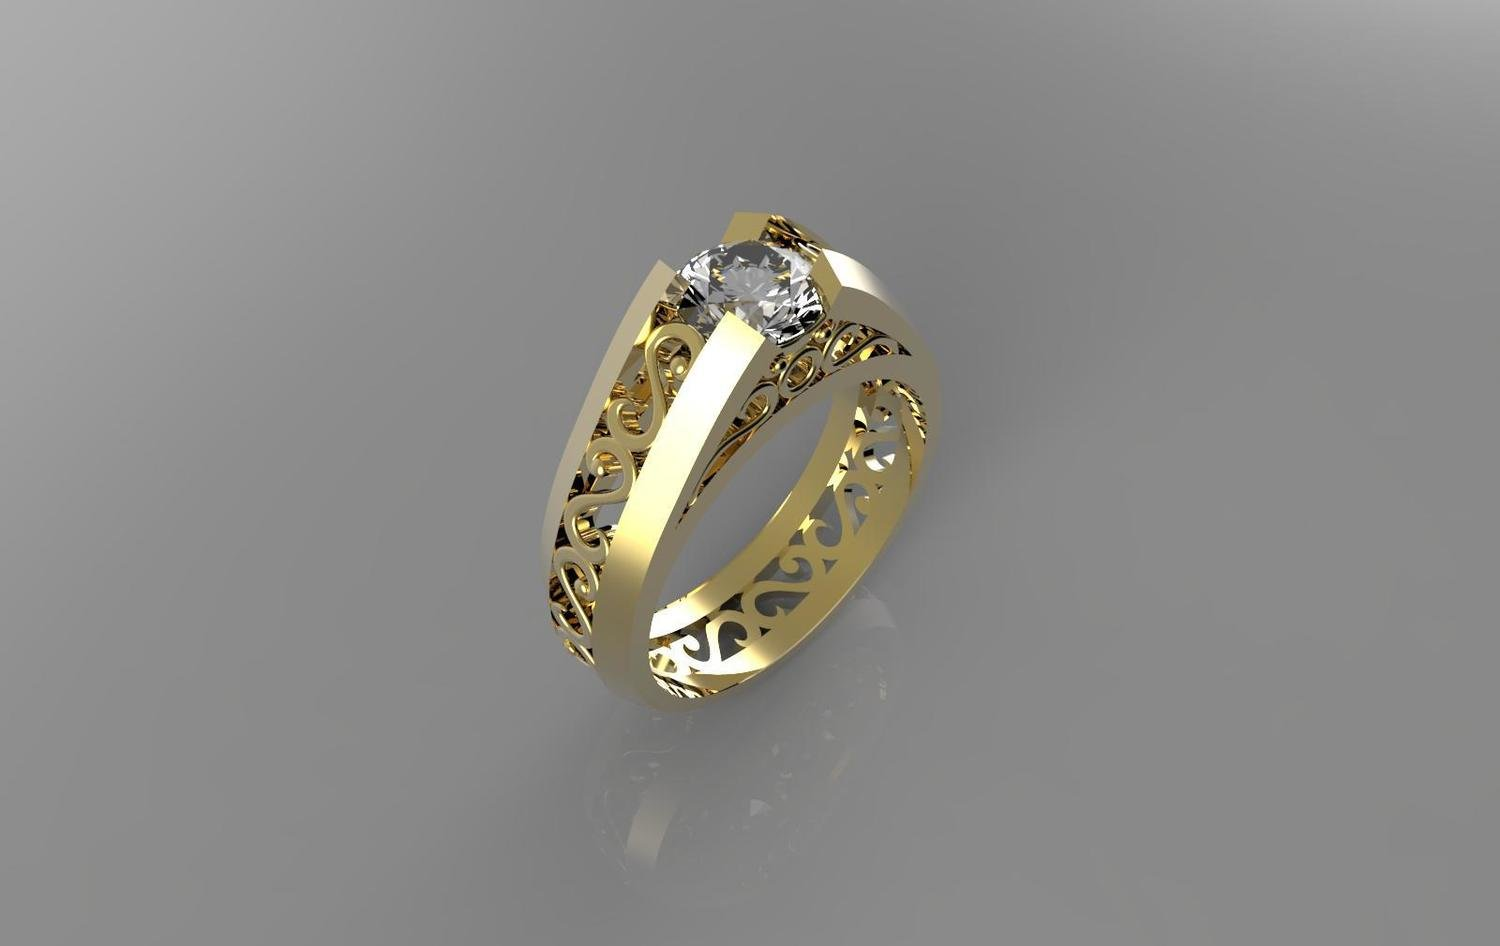 3D CAD Model of Anniversary Ring with  Diamonds